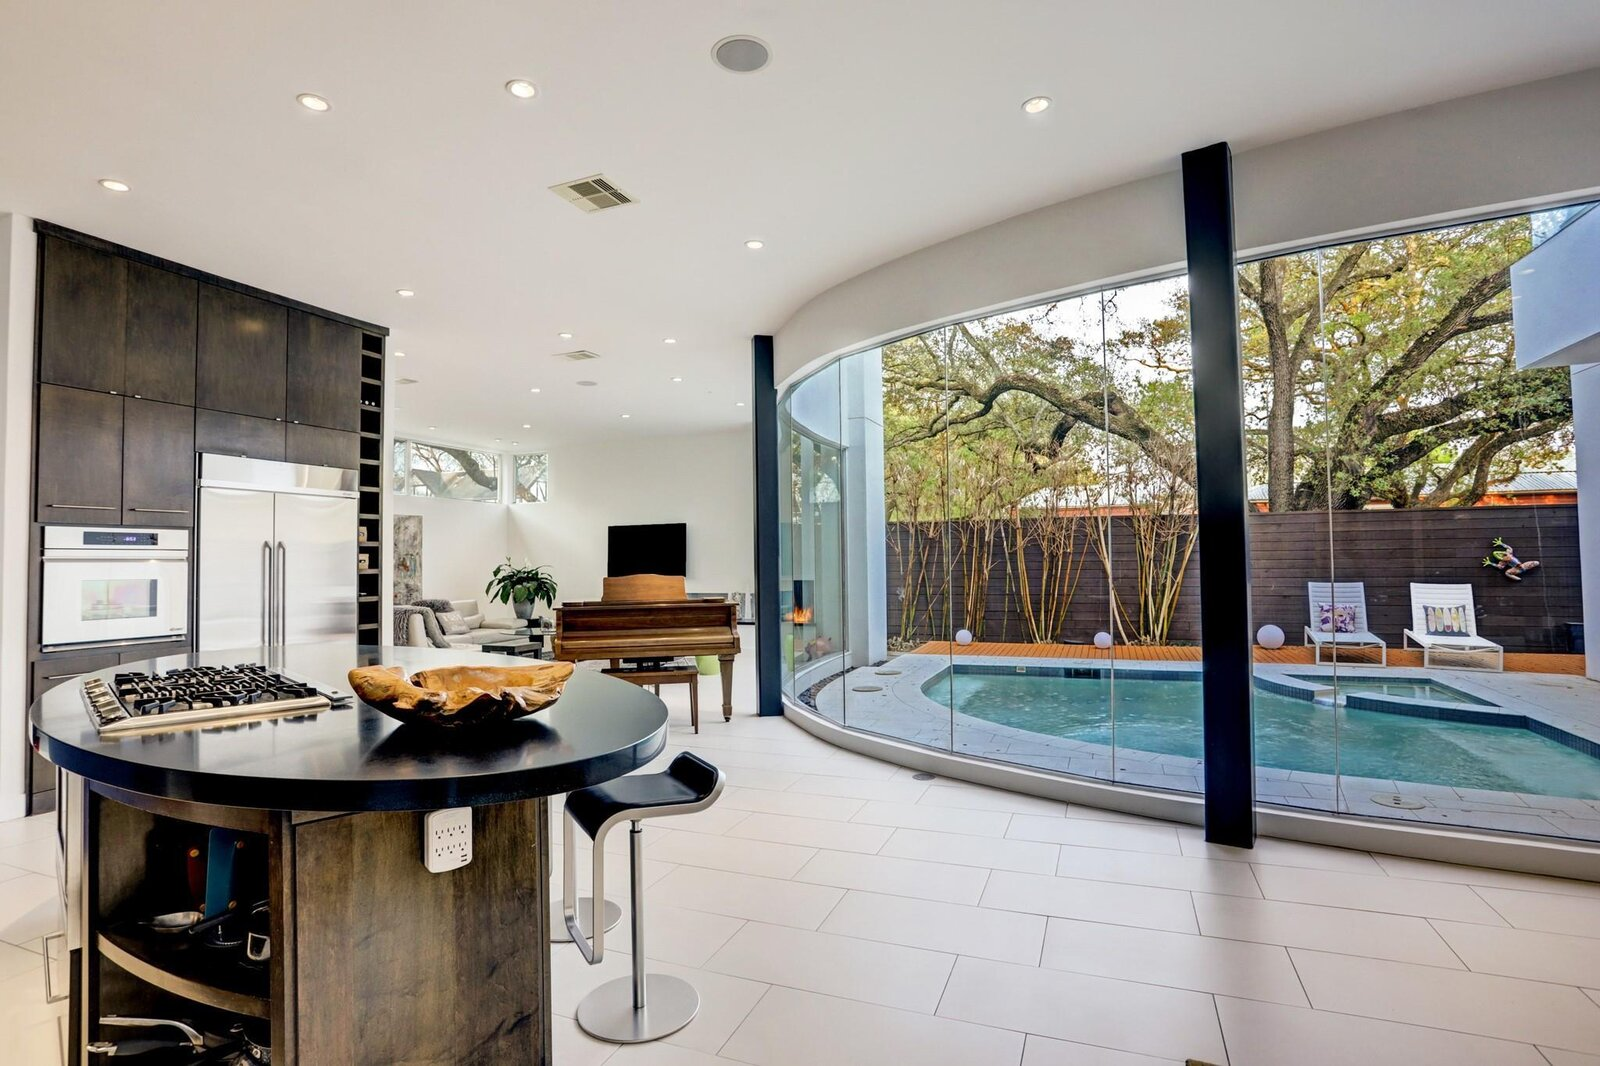 Allen Bianchi Houston home kitchen and pool area